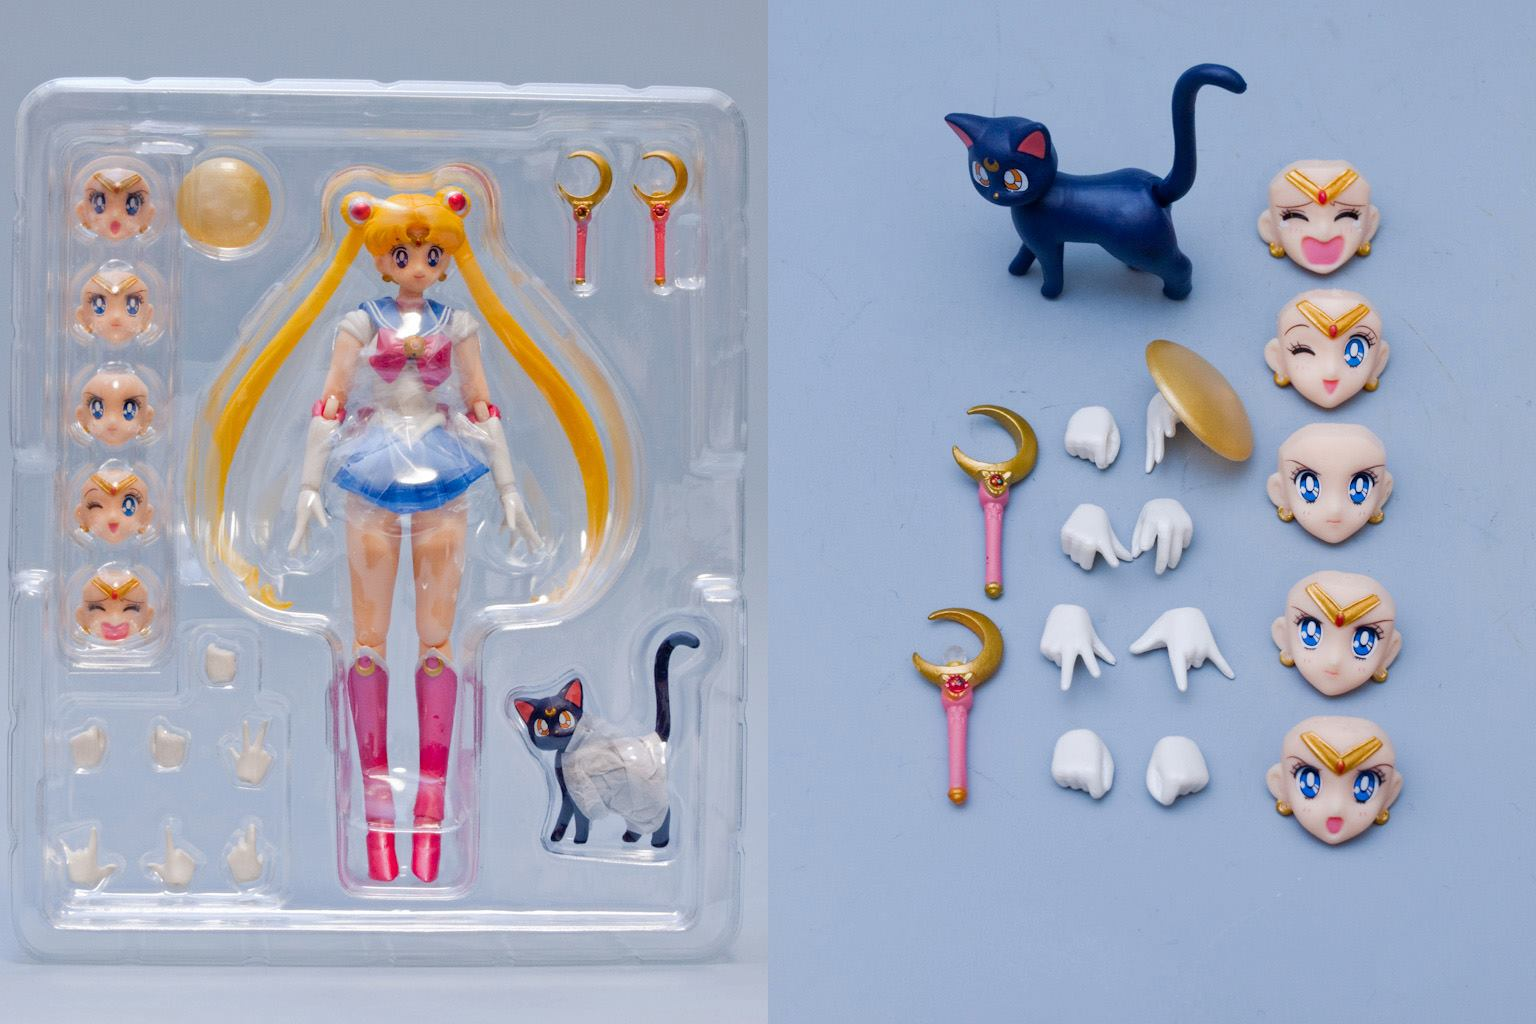 Les poupées Sailor Moon Sailor_moon_s_h_figuarts_all_pieces